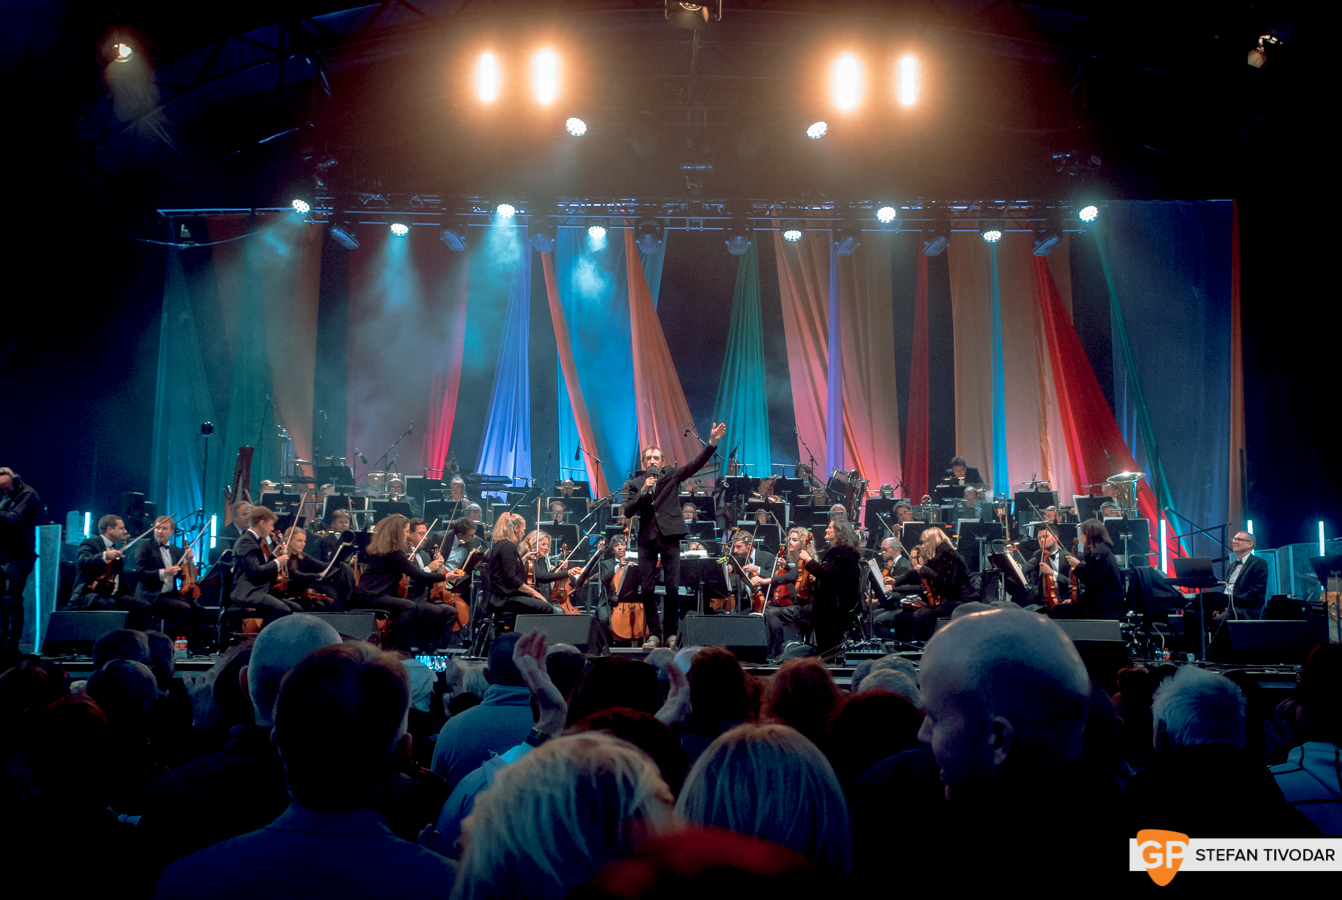 RTE Concert Orchestra Culture Night 2019 at National Museum of Ireland Tivodar 1